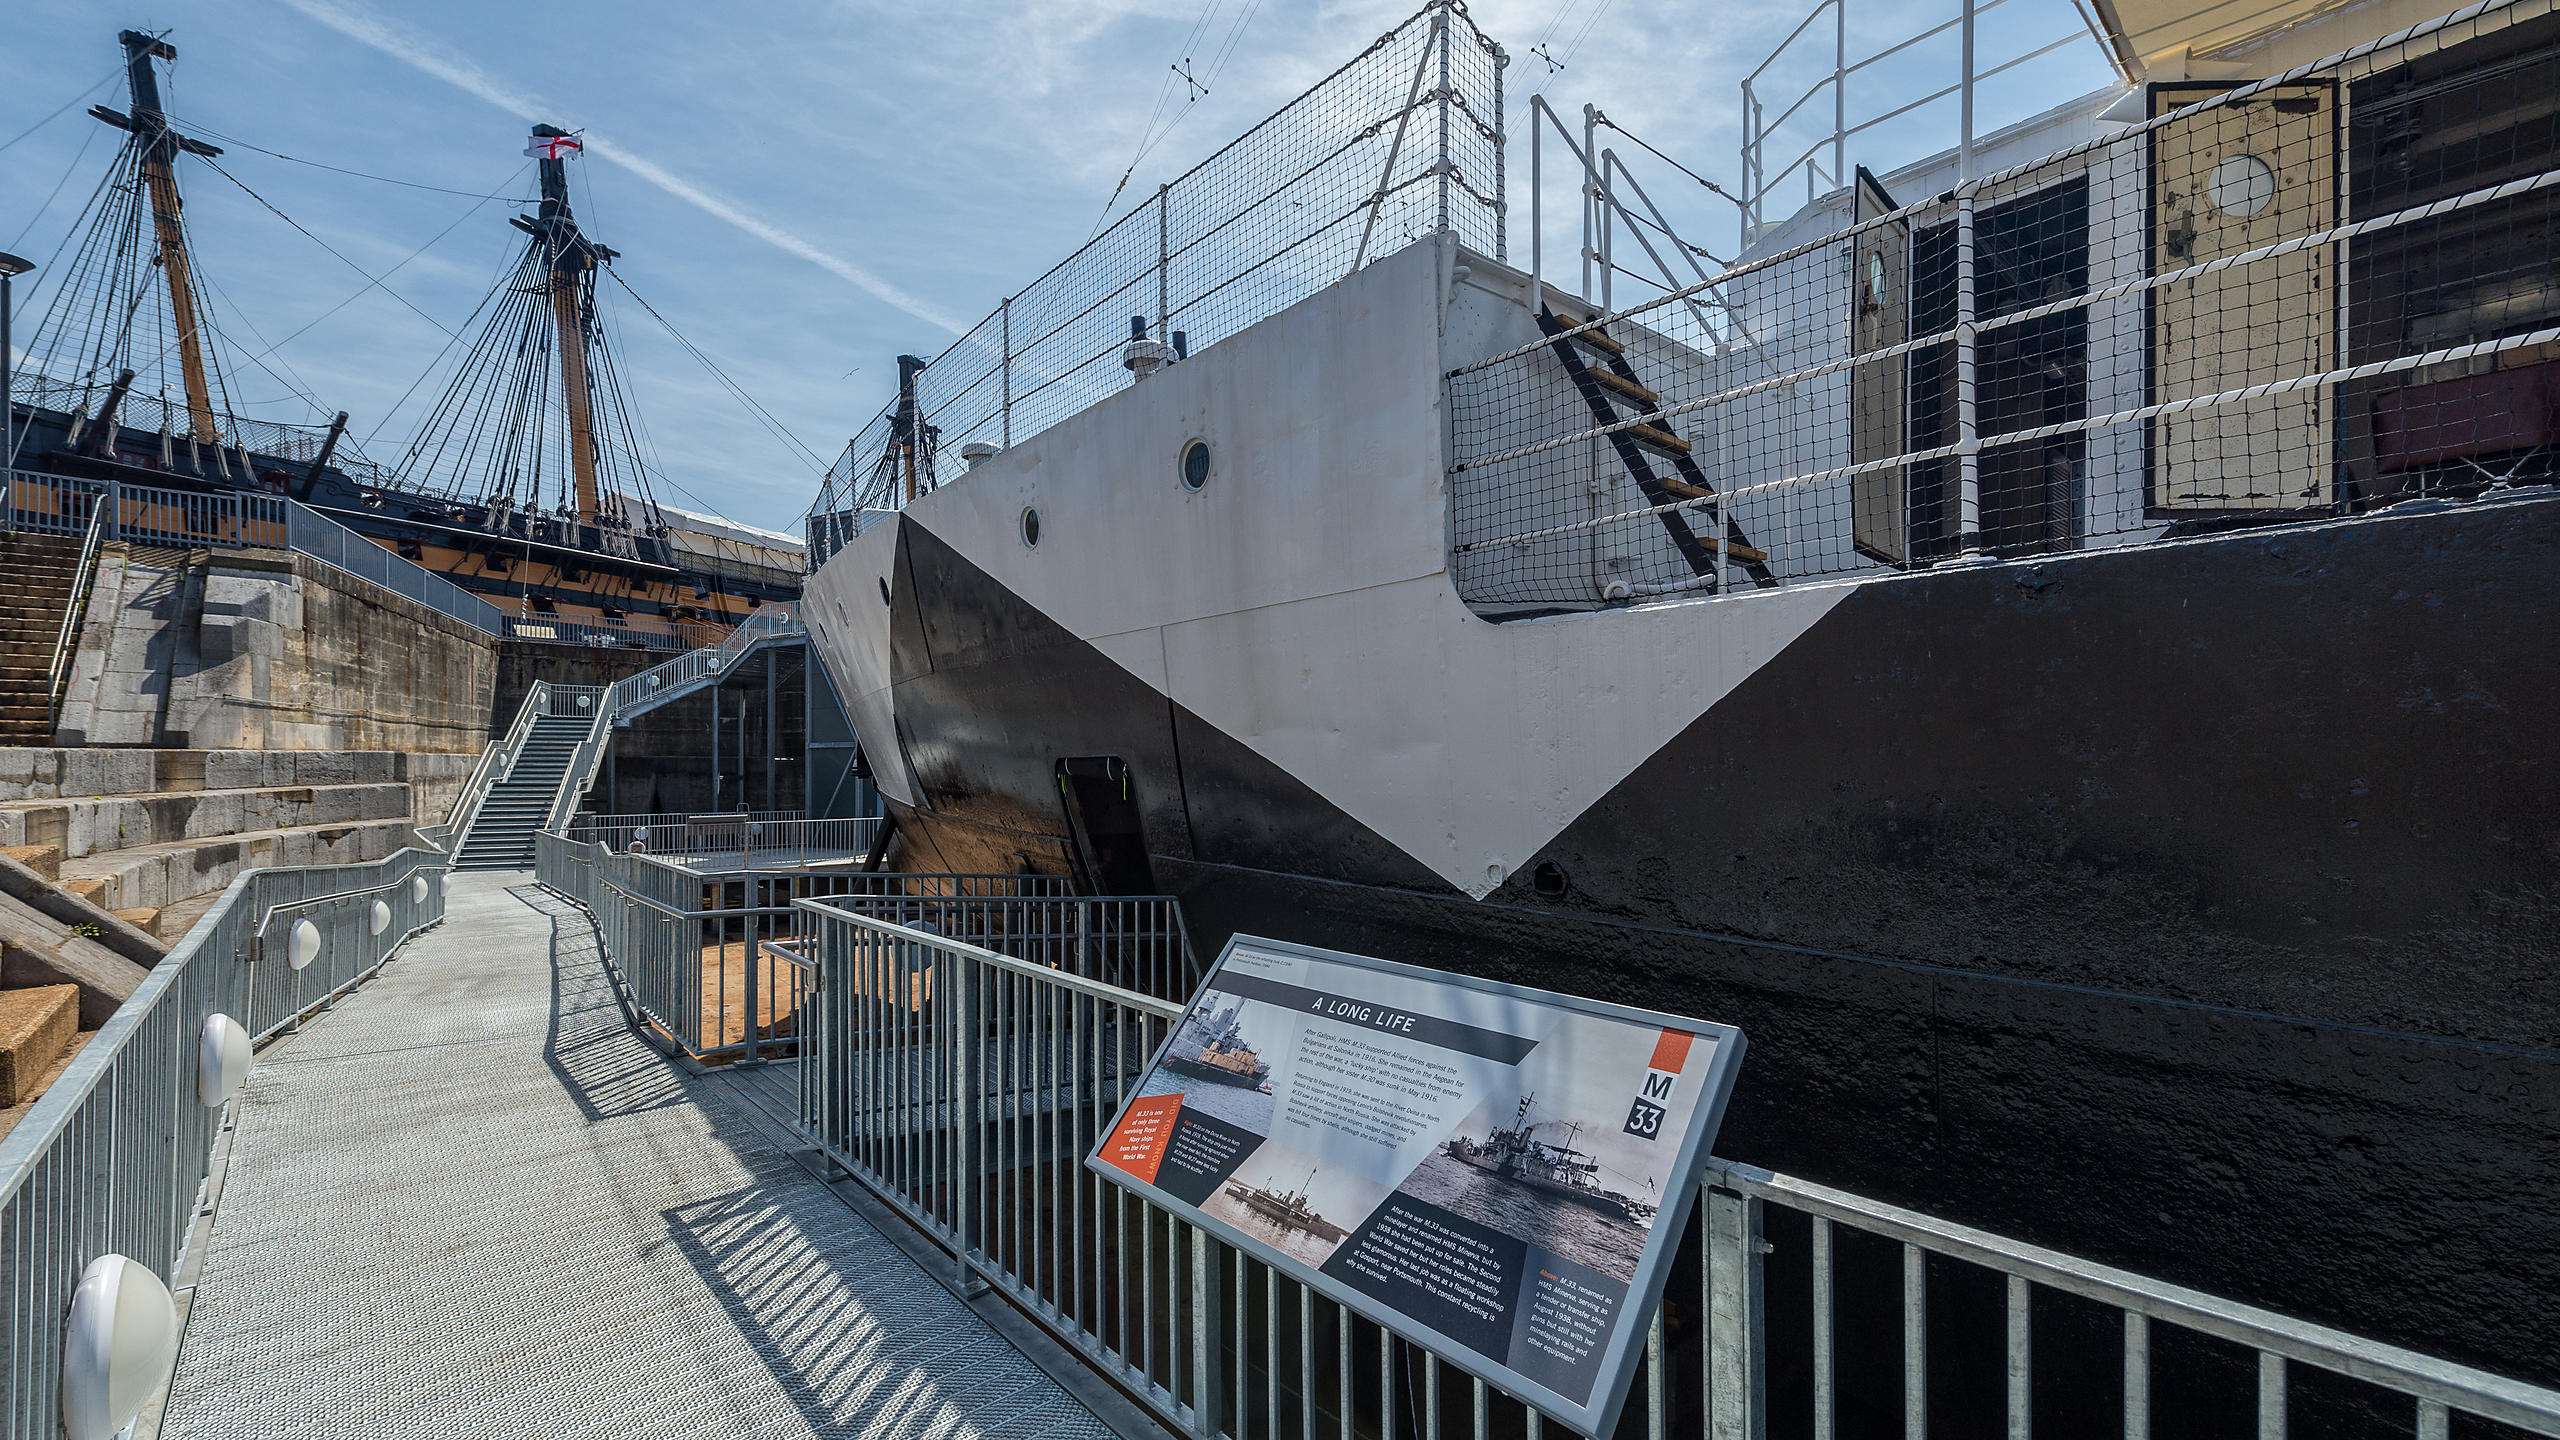 M33 battleship in display at Portsmouth Historic Dockyard